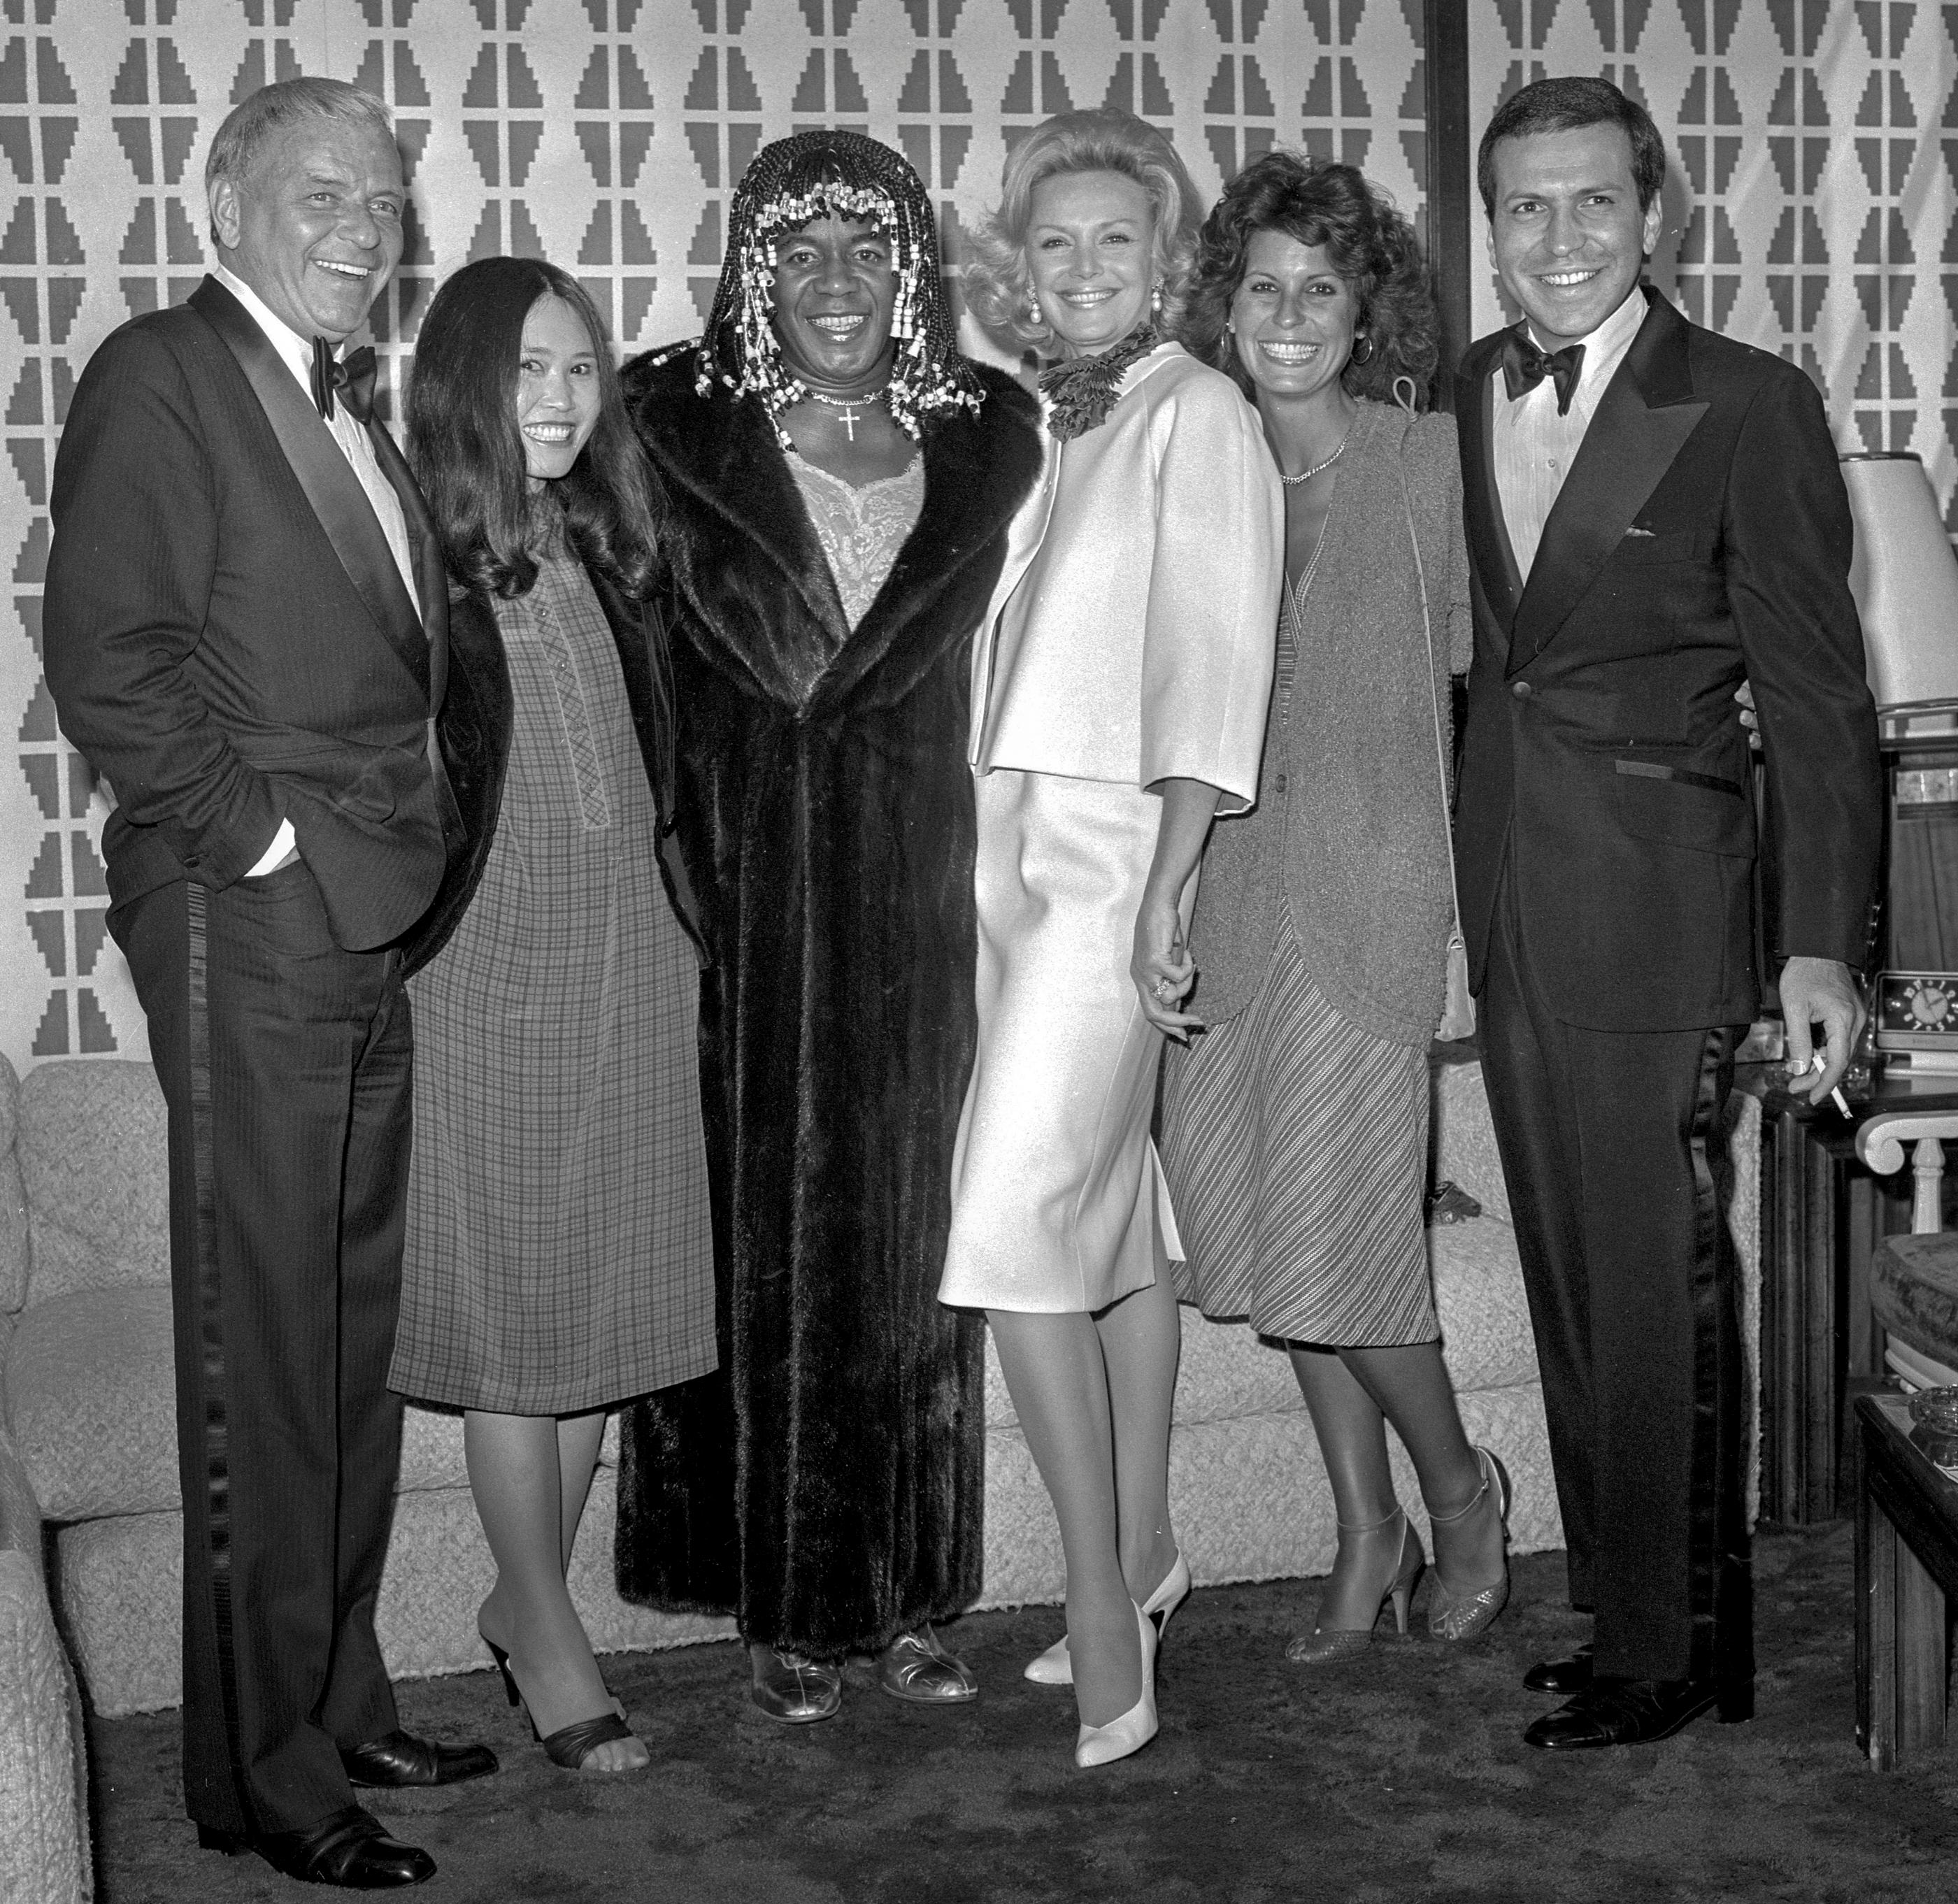 From left, Frank Sinatra, unknown, Flip Wilson, Barbara Sinatra, Tina Sinatra and Frank Sinatra Jr. are seen July 27, 1980 at the Sahara in Las Vegas. CREDIT: Las Vegas News Bureau